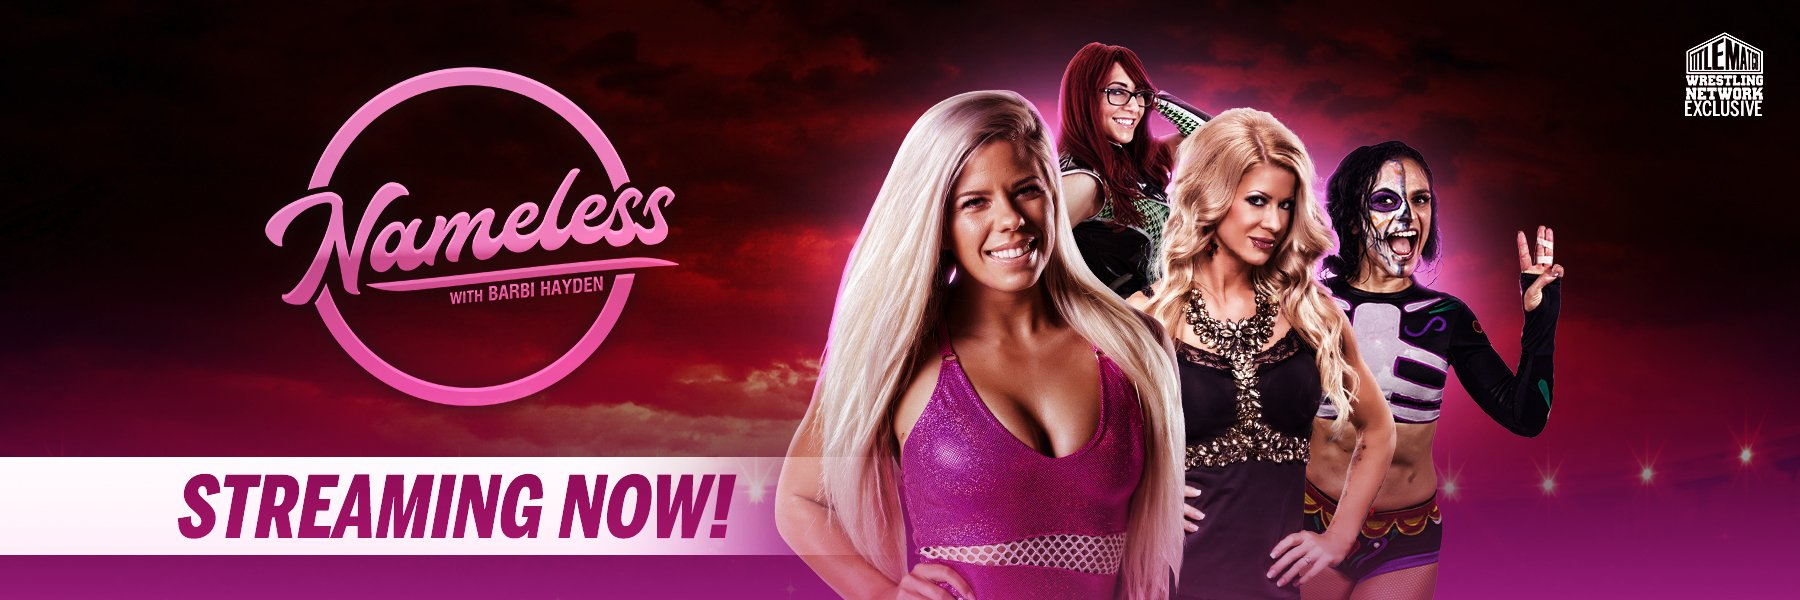 Only on Title Match: New Wrestling Talk Show - Nameless w/ Barbi Hayden!